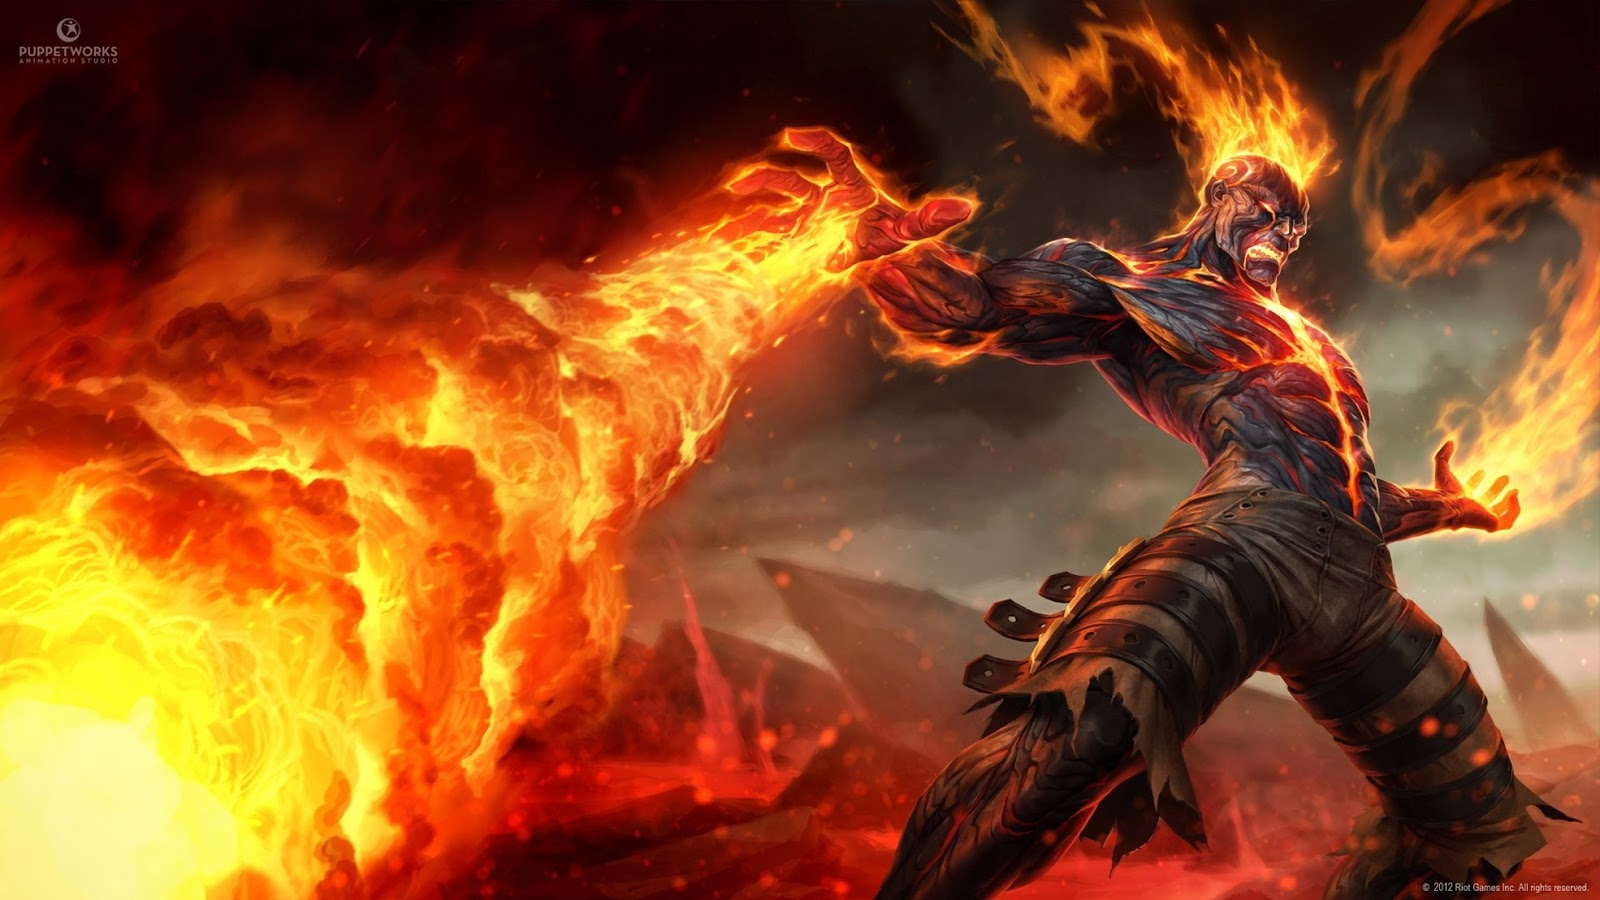 Mage Fire Online Computer Video Game HD Wallpaper Backgrounds b36 1600x900